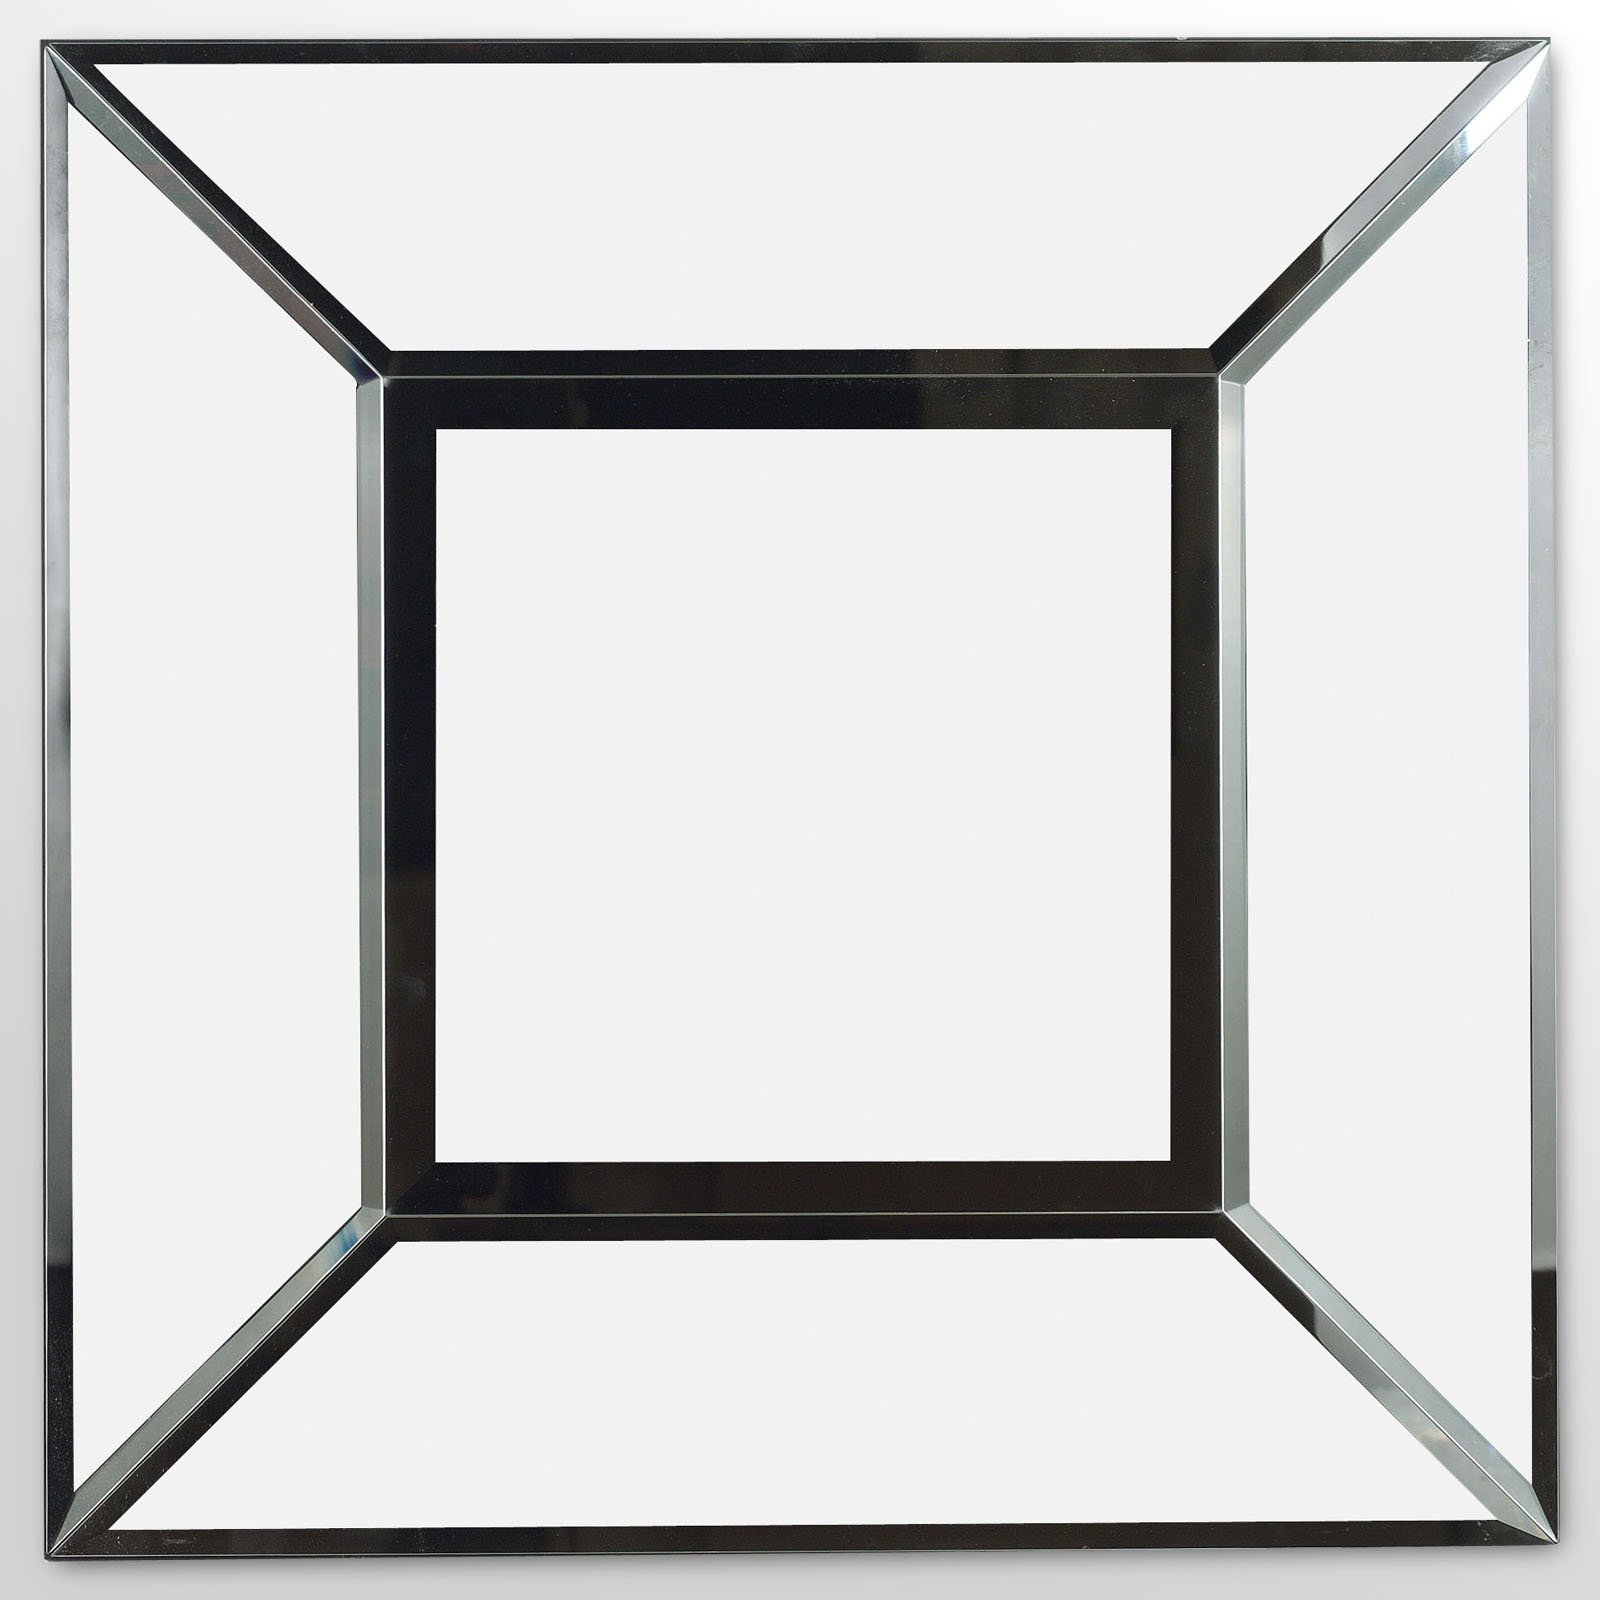 Cubic Wall Mirror - 30W x 30H in.